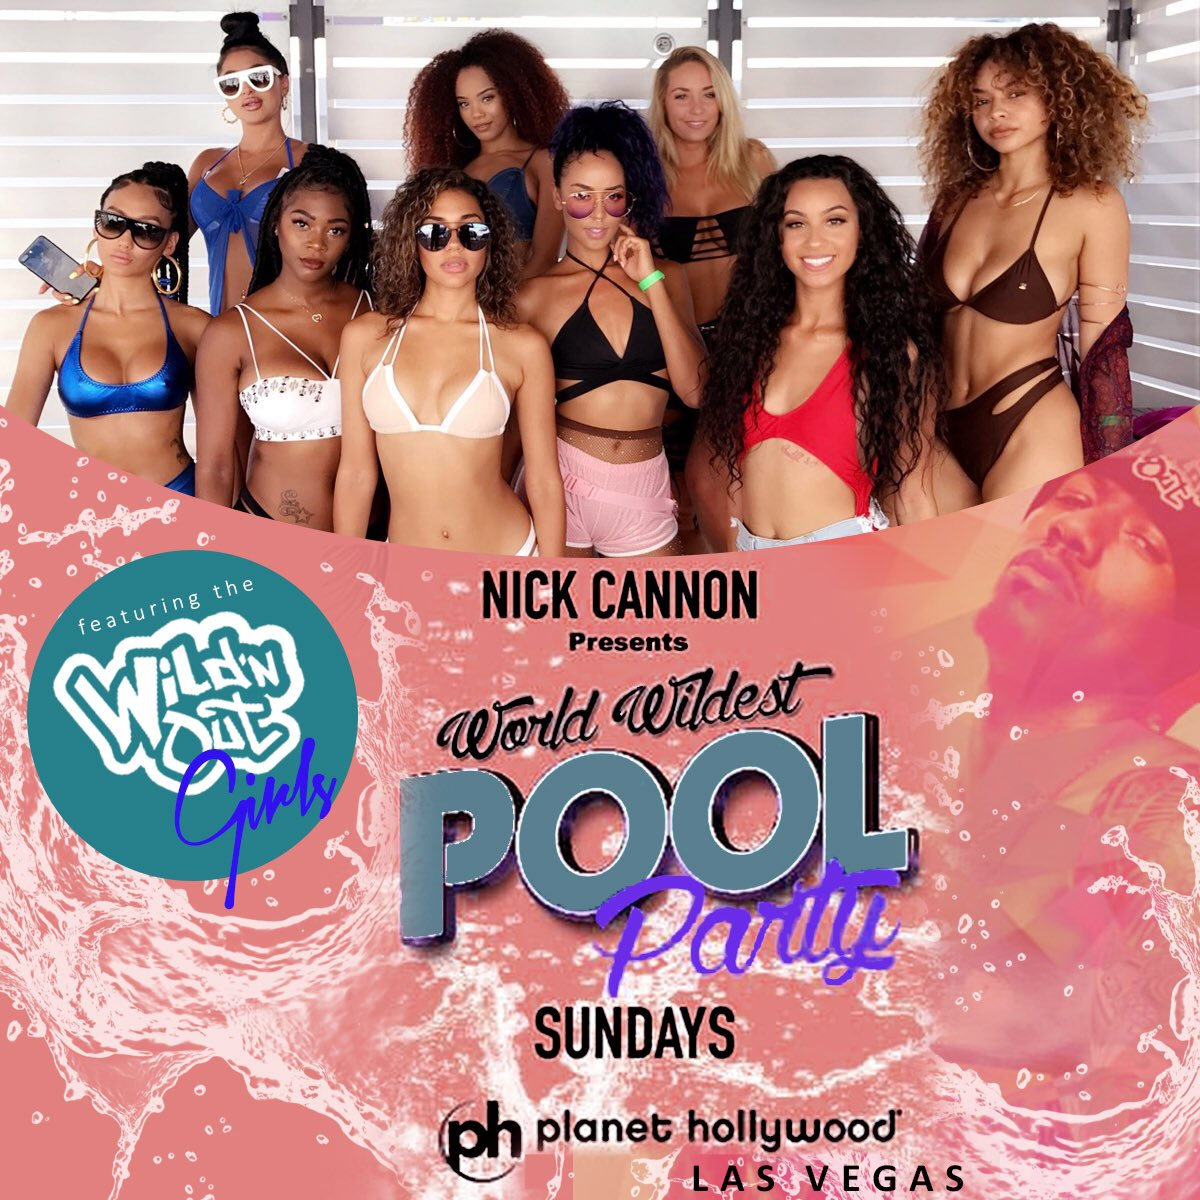 We&#39;re at it again today @phvegas don&#39;t miss it! #ncredible #wildnout @nickcannon<br>http://pic.twitter.com/hwHAck3PcV